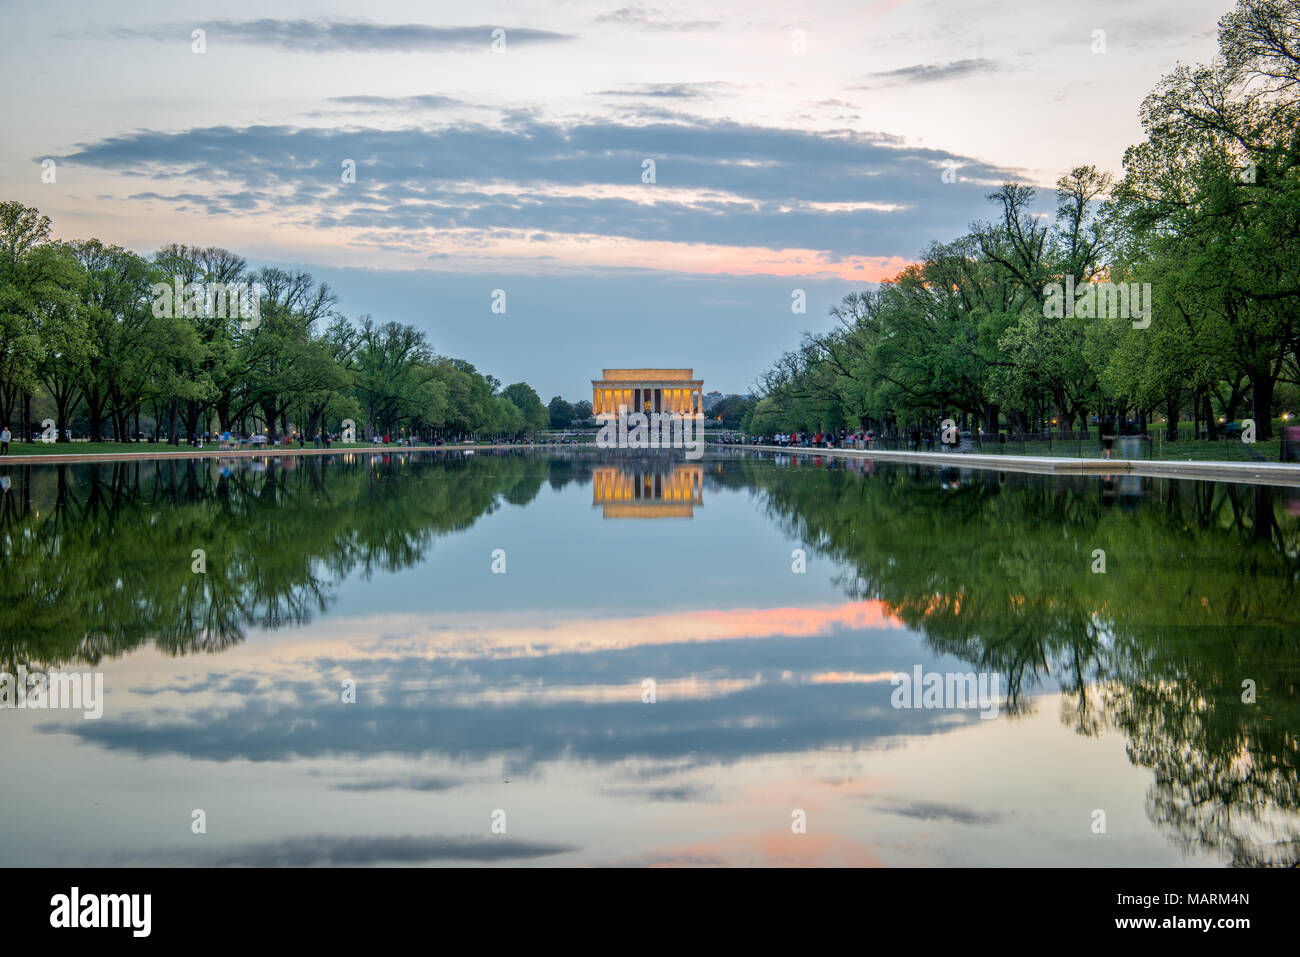 Lincoln Memorial Washington DC - Stock Image